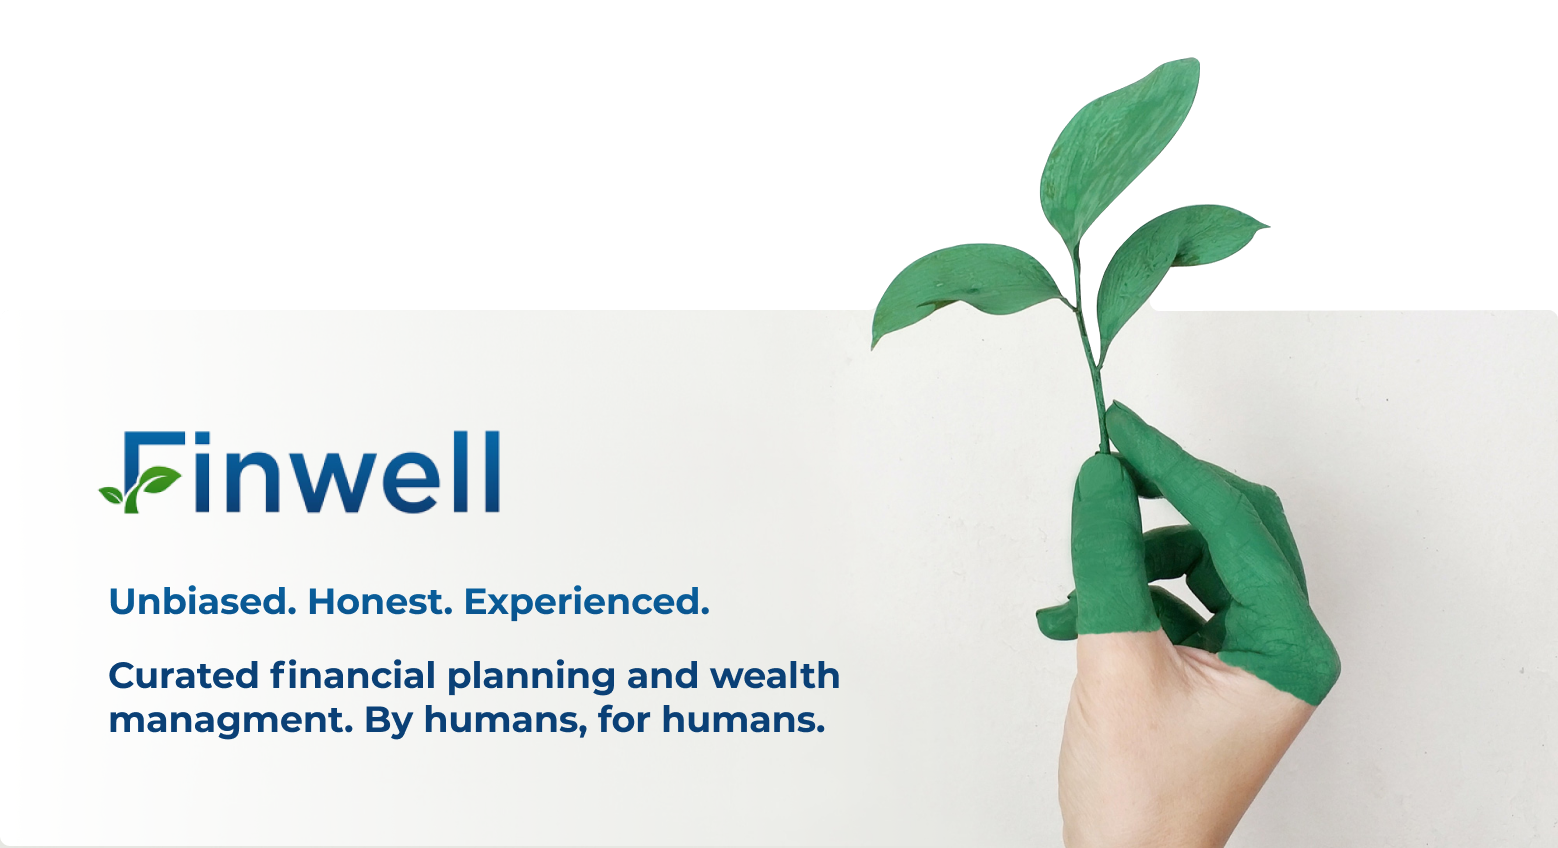 Finwell Benefits ad with green hand holding growing plant